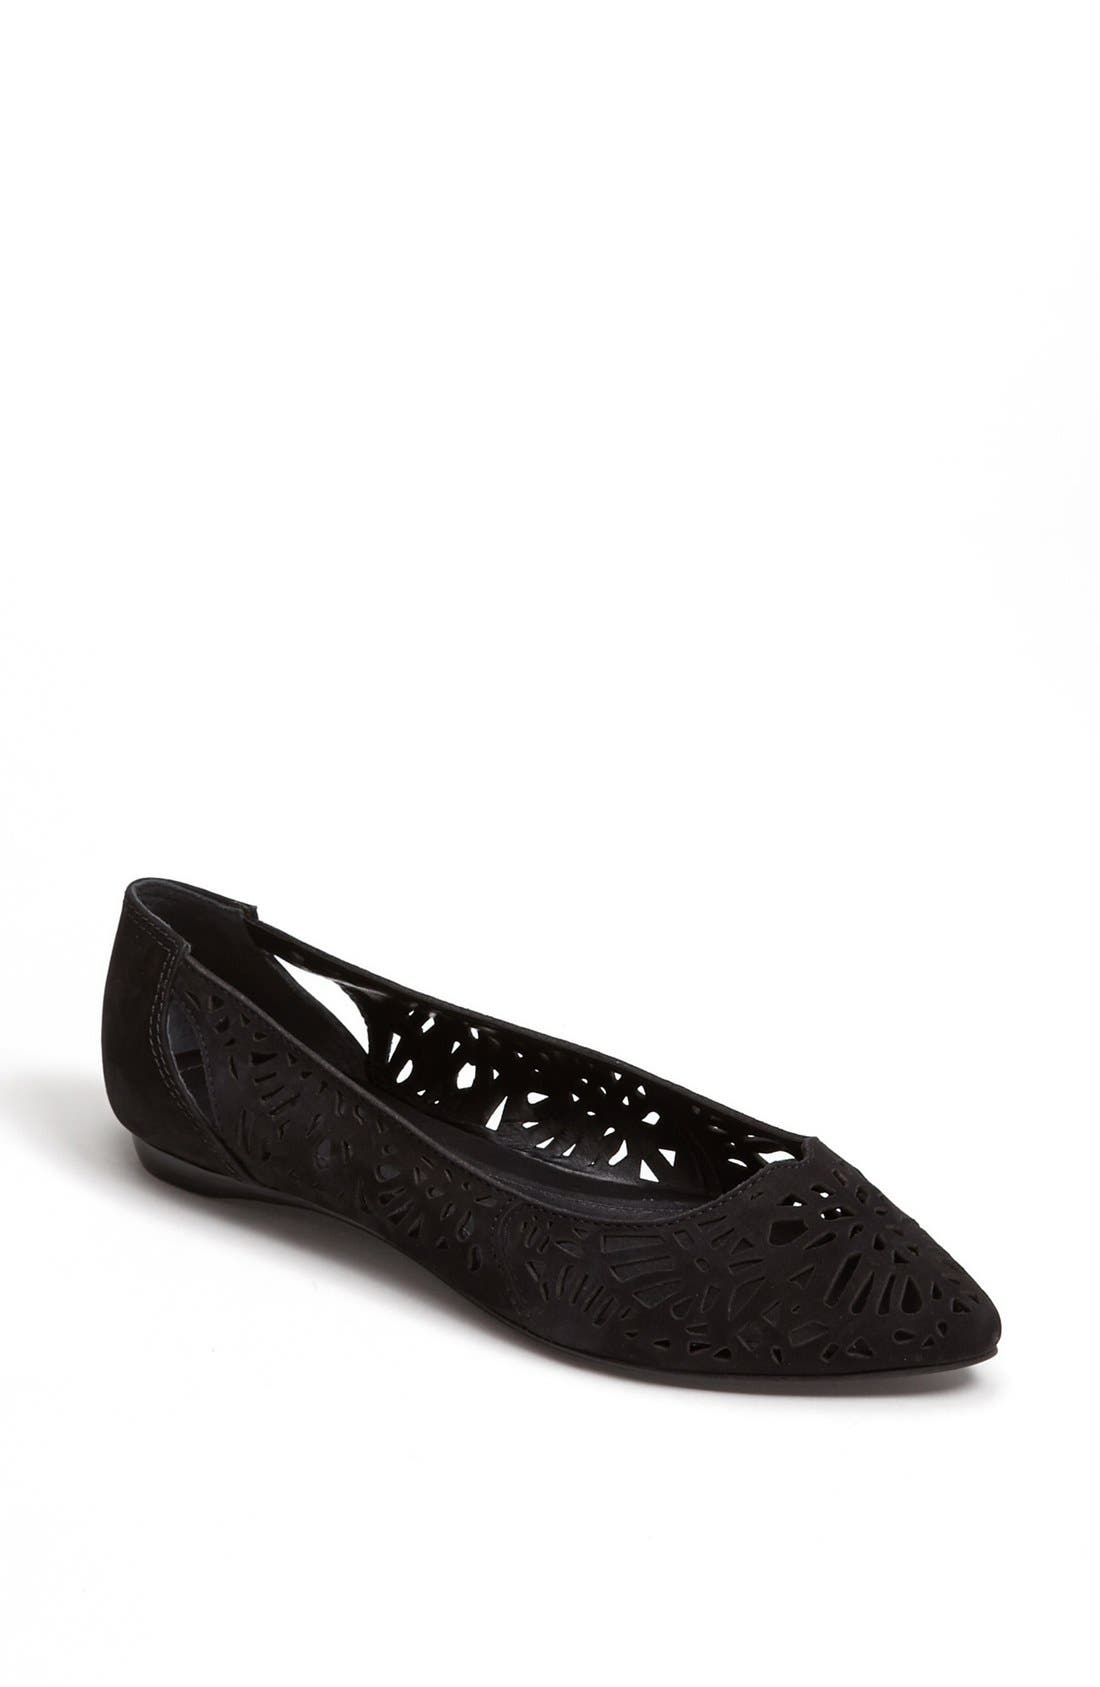 'Cicely' Perforated Flat,                             Main thumbnail 1, color,                             Black